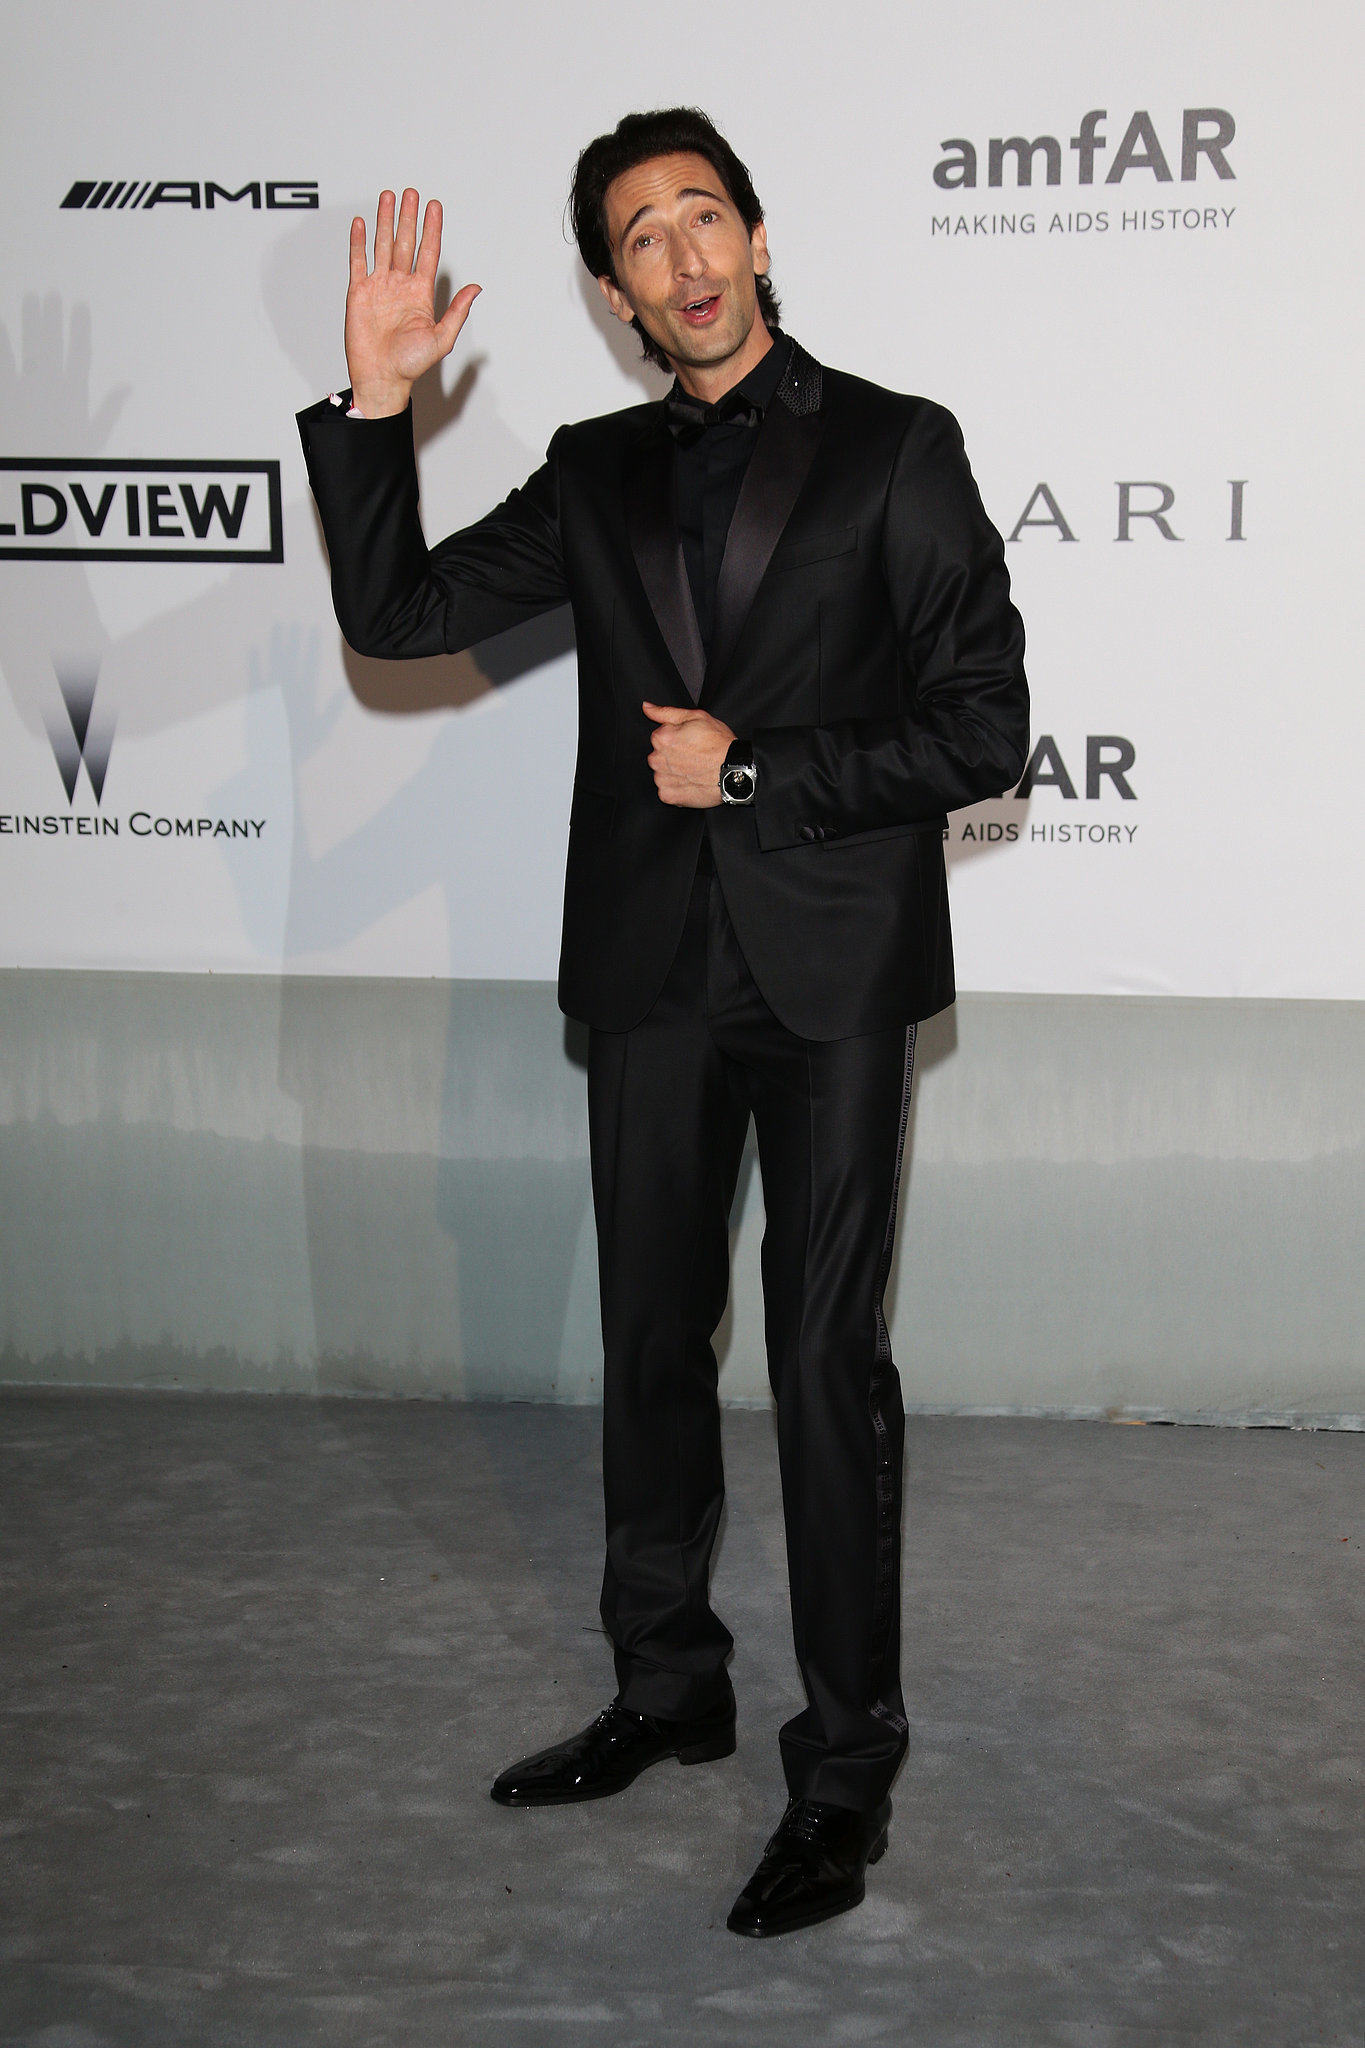 Adrien Brody waved to the photographers.